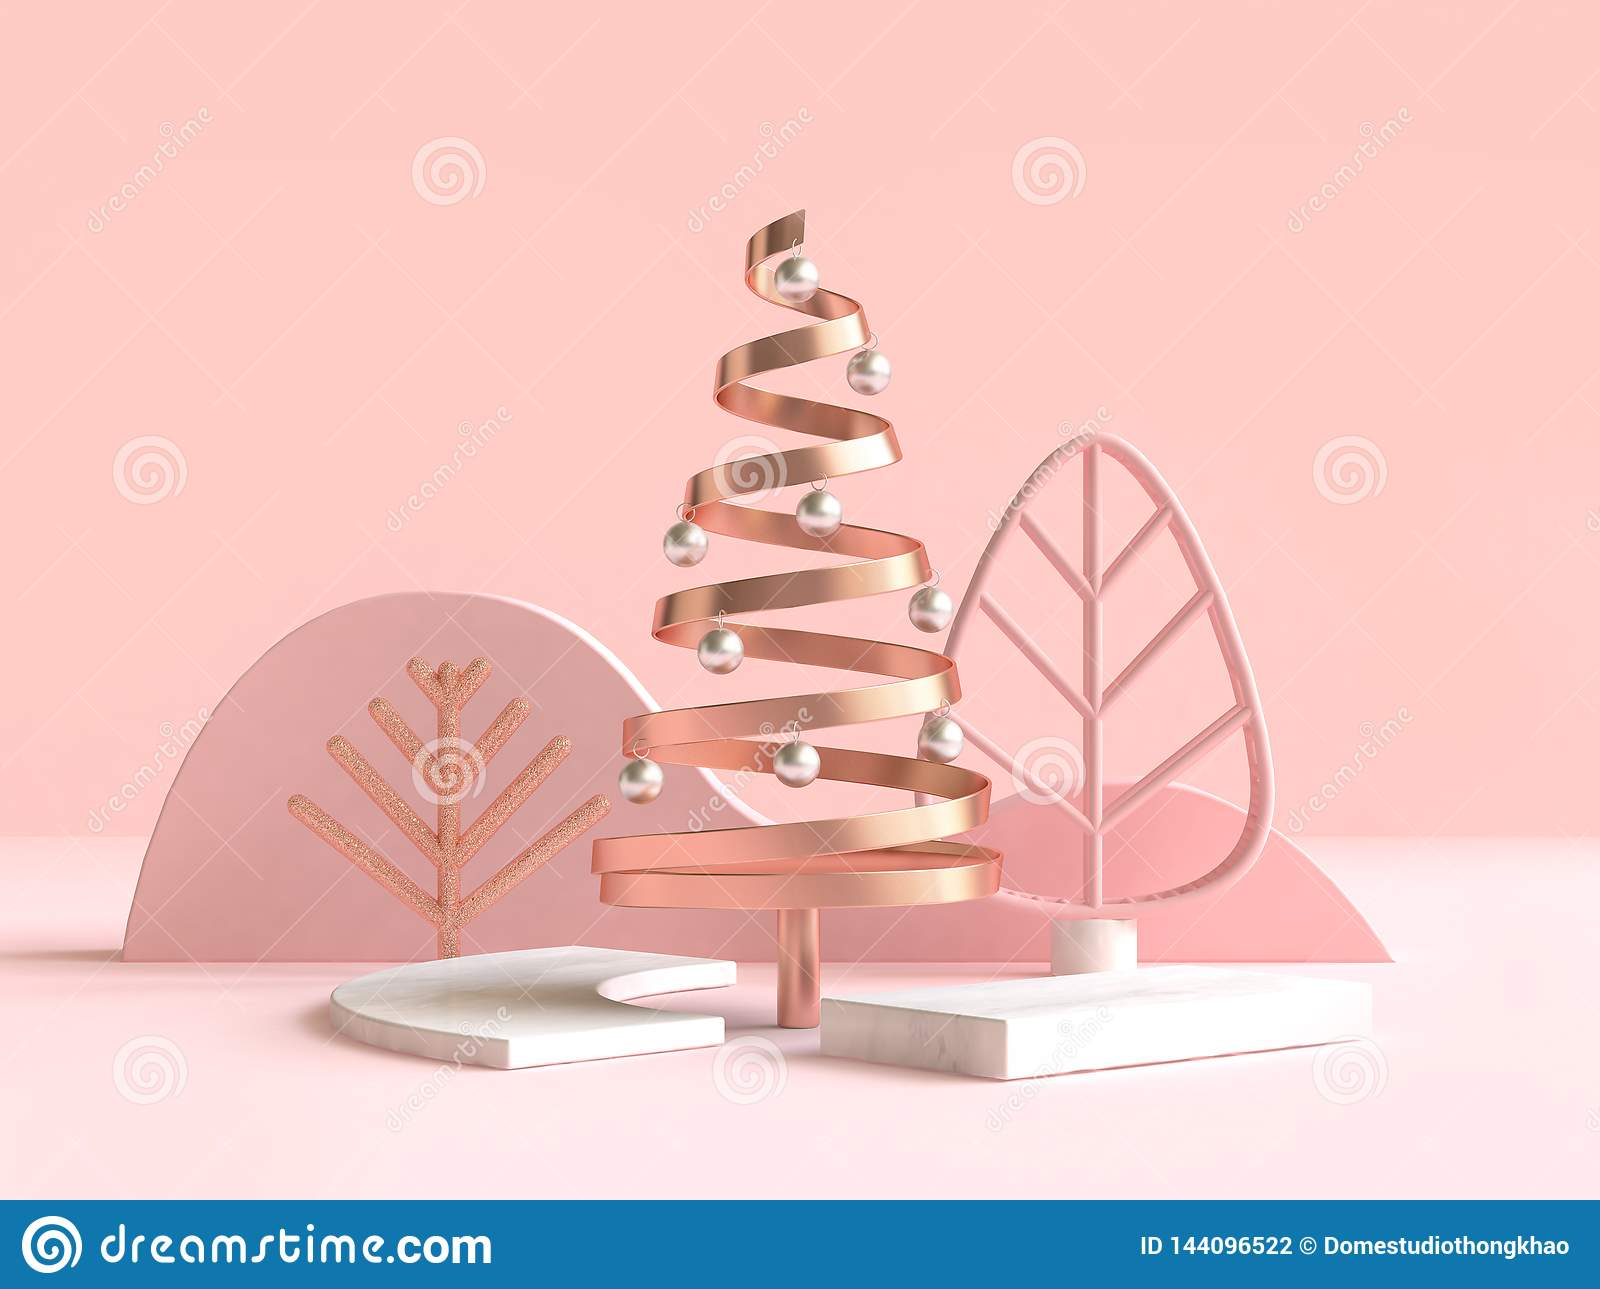 3d rendering abstract geometric shape christmas tree scene concept decoration